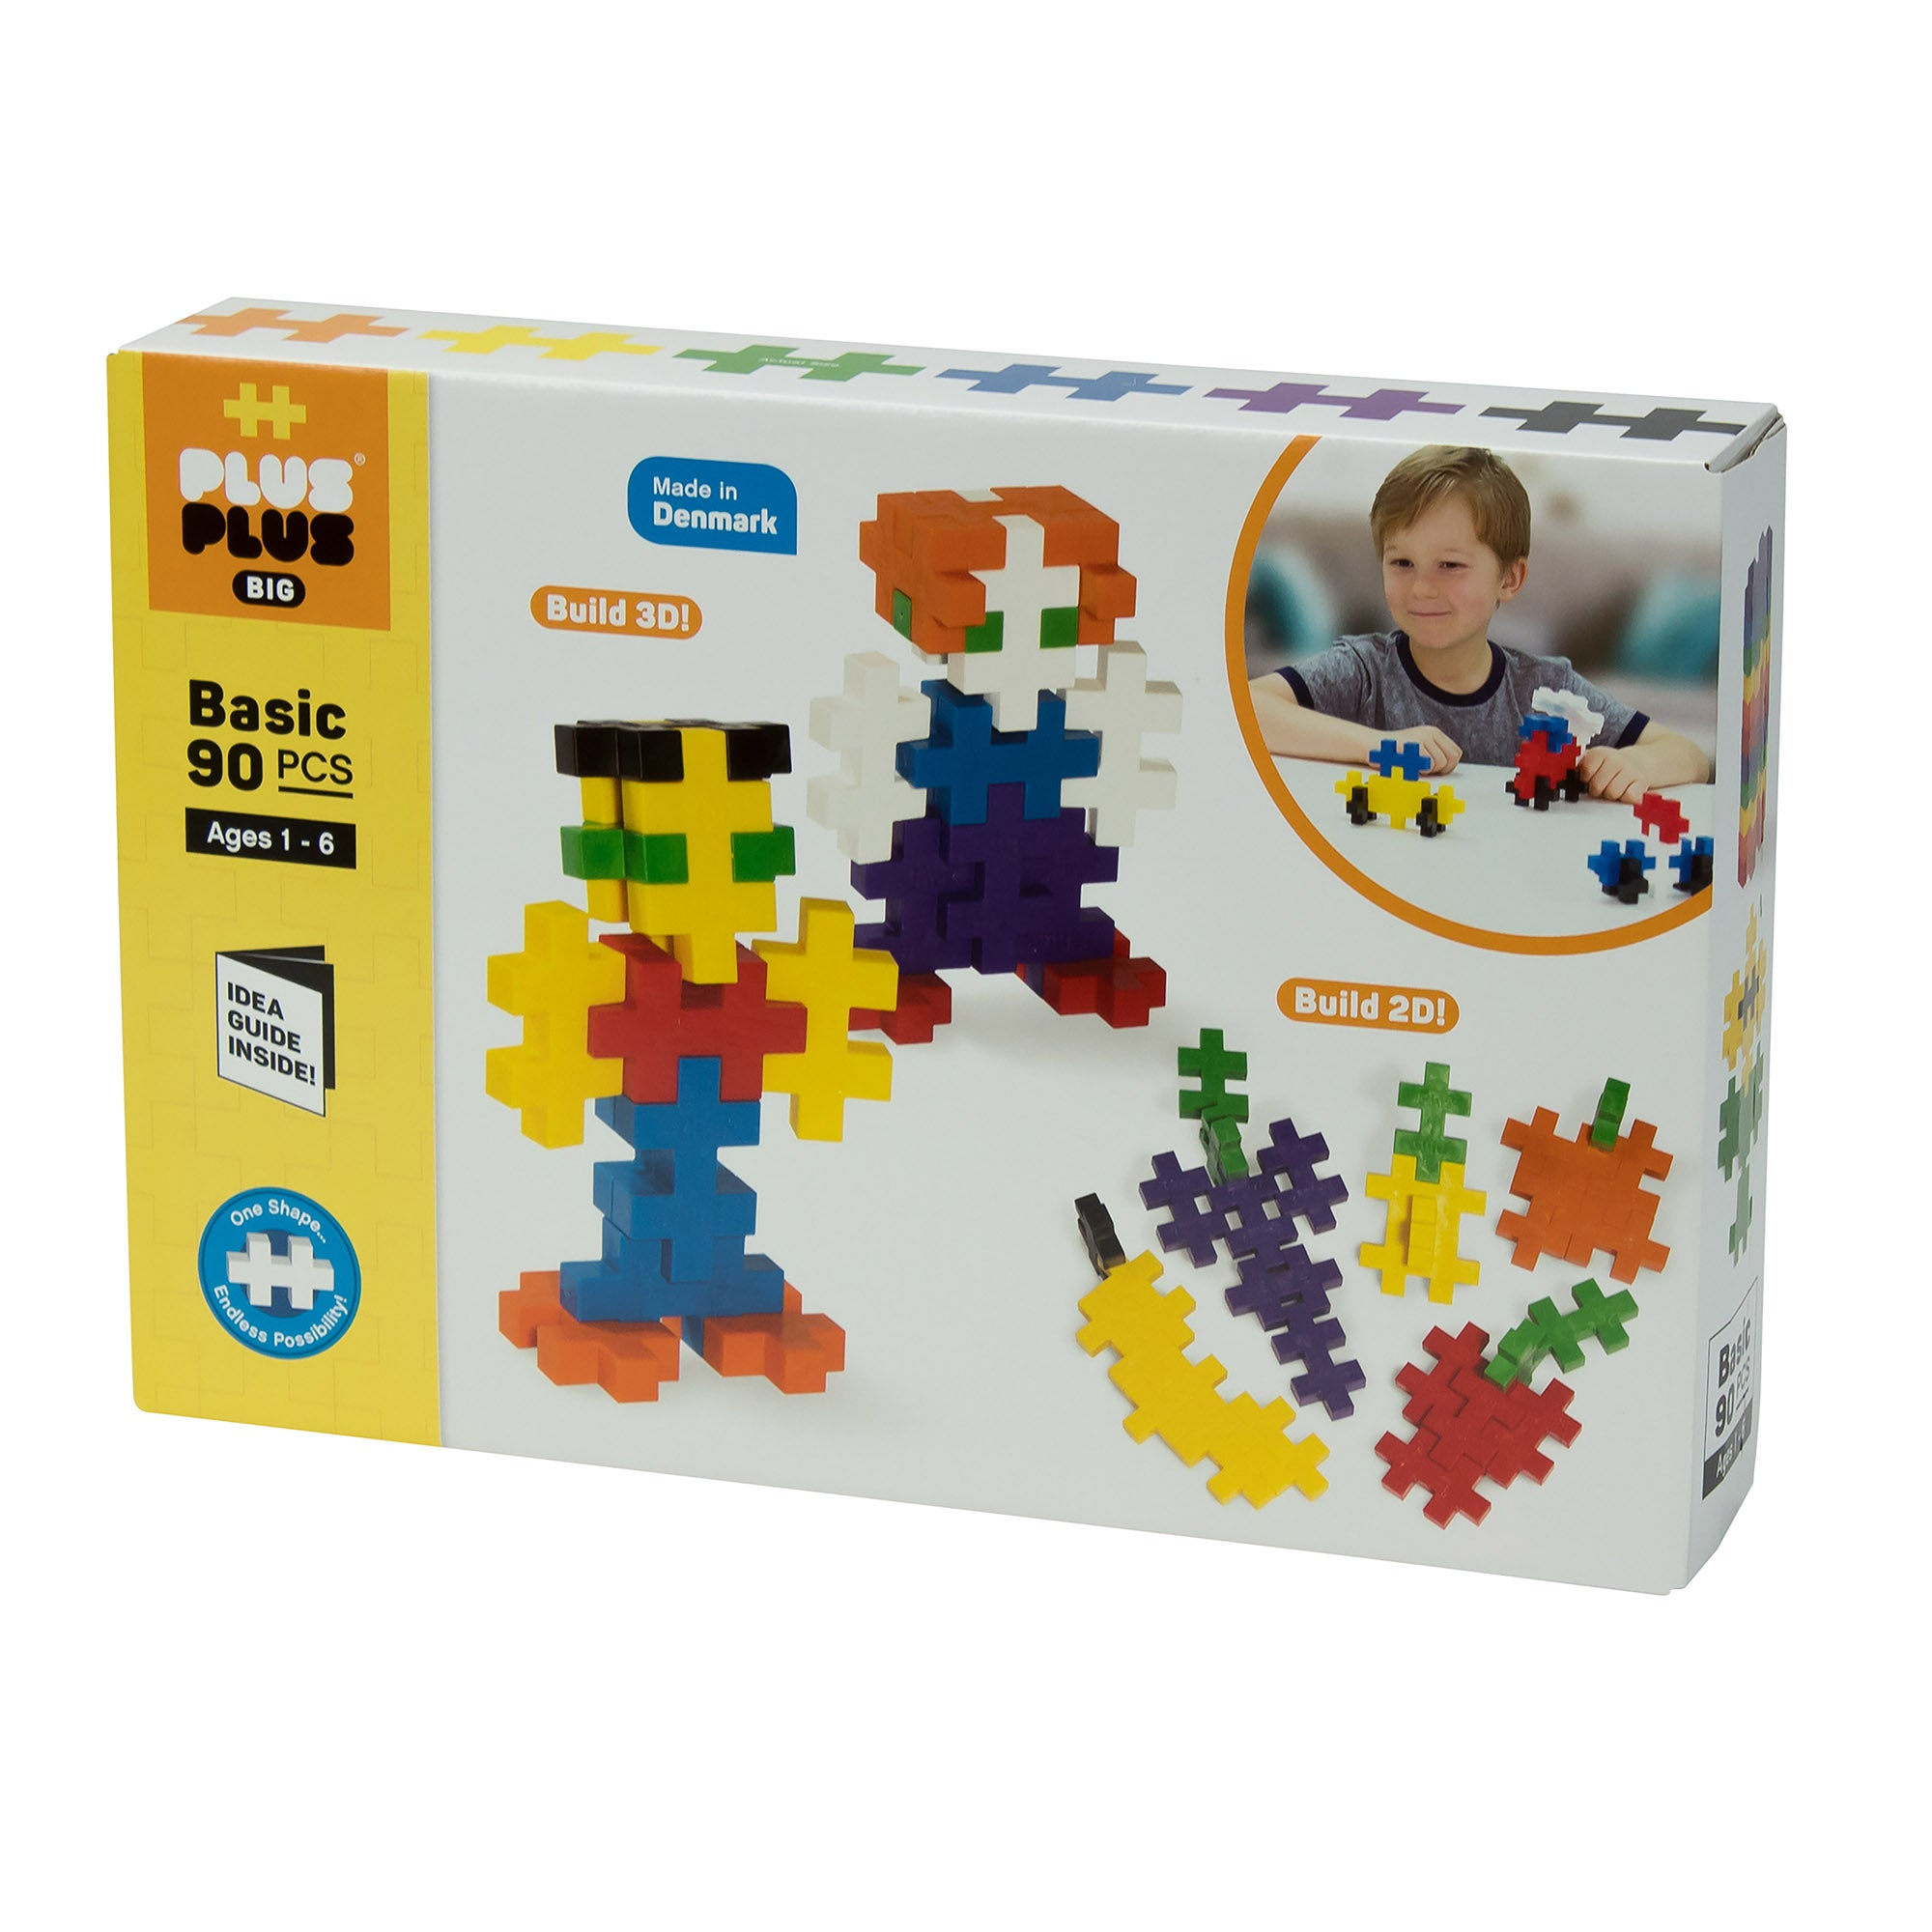 Plus-Plus - BIG 90 pc - Basic